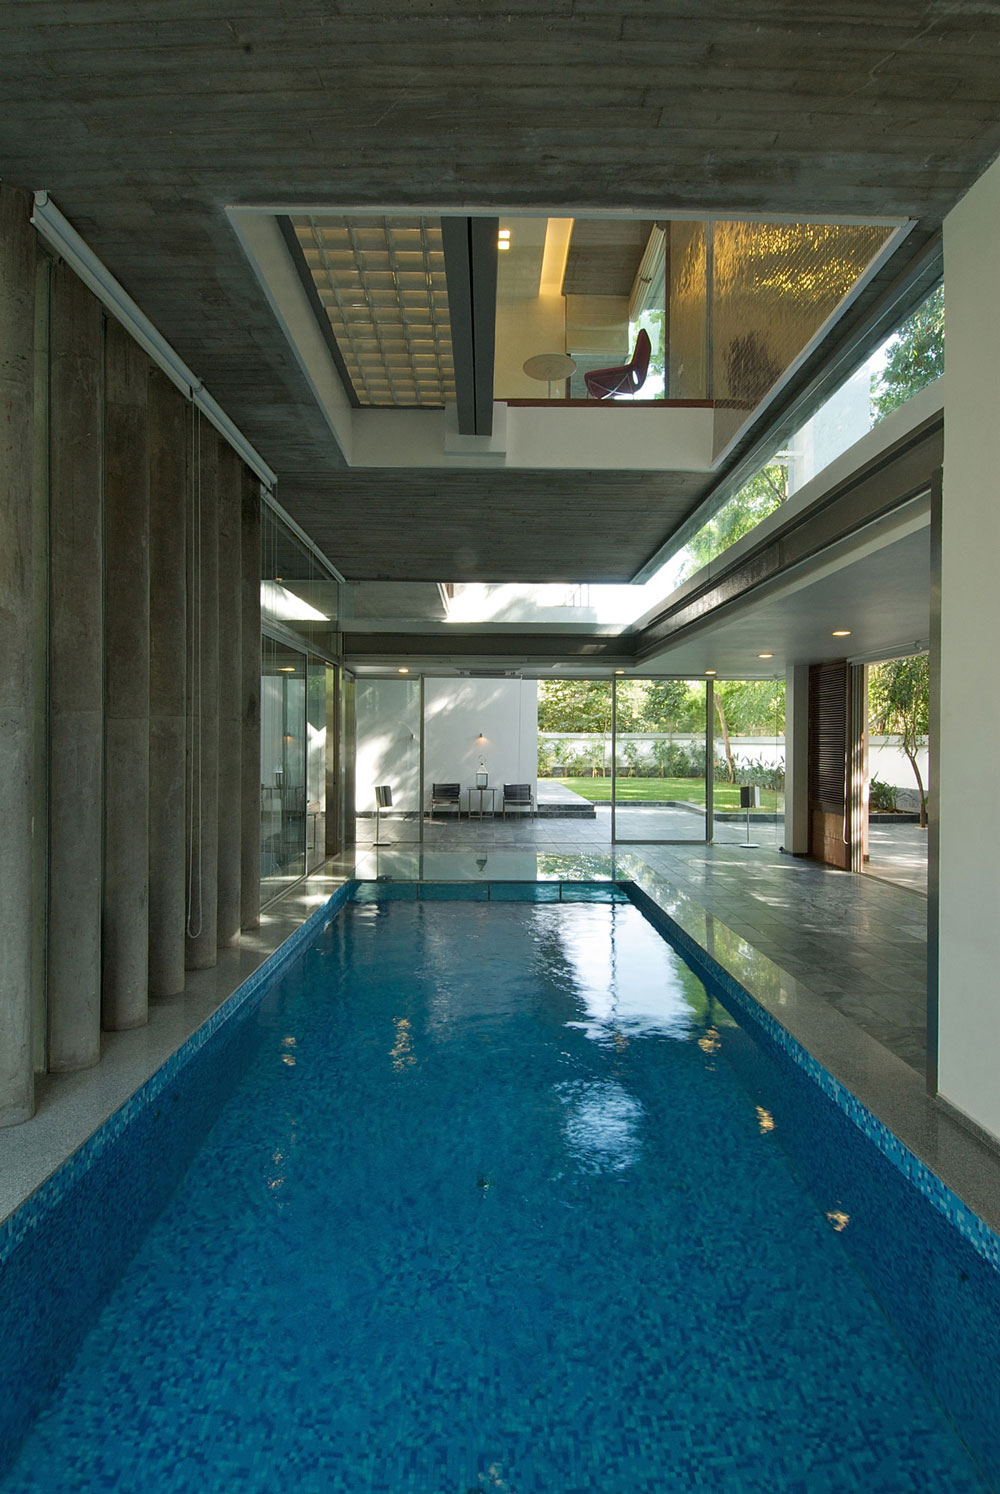 Indoor Pool, Glass Walls, Poona House in Mumbai, India by Rajiv Saini